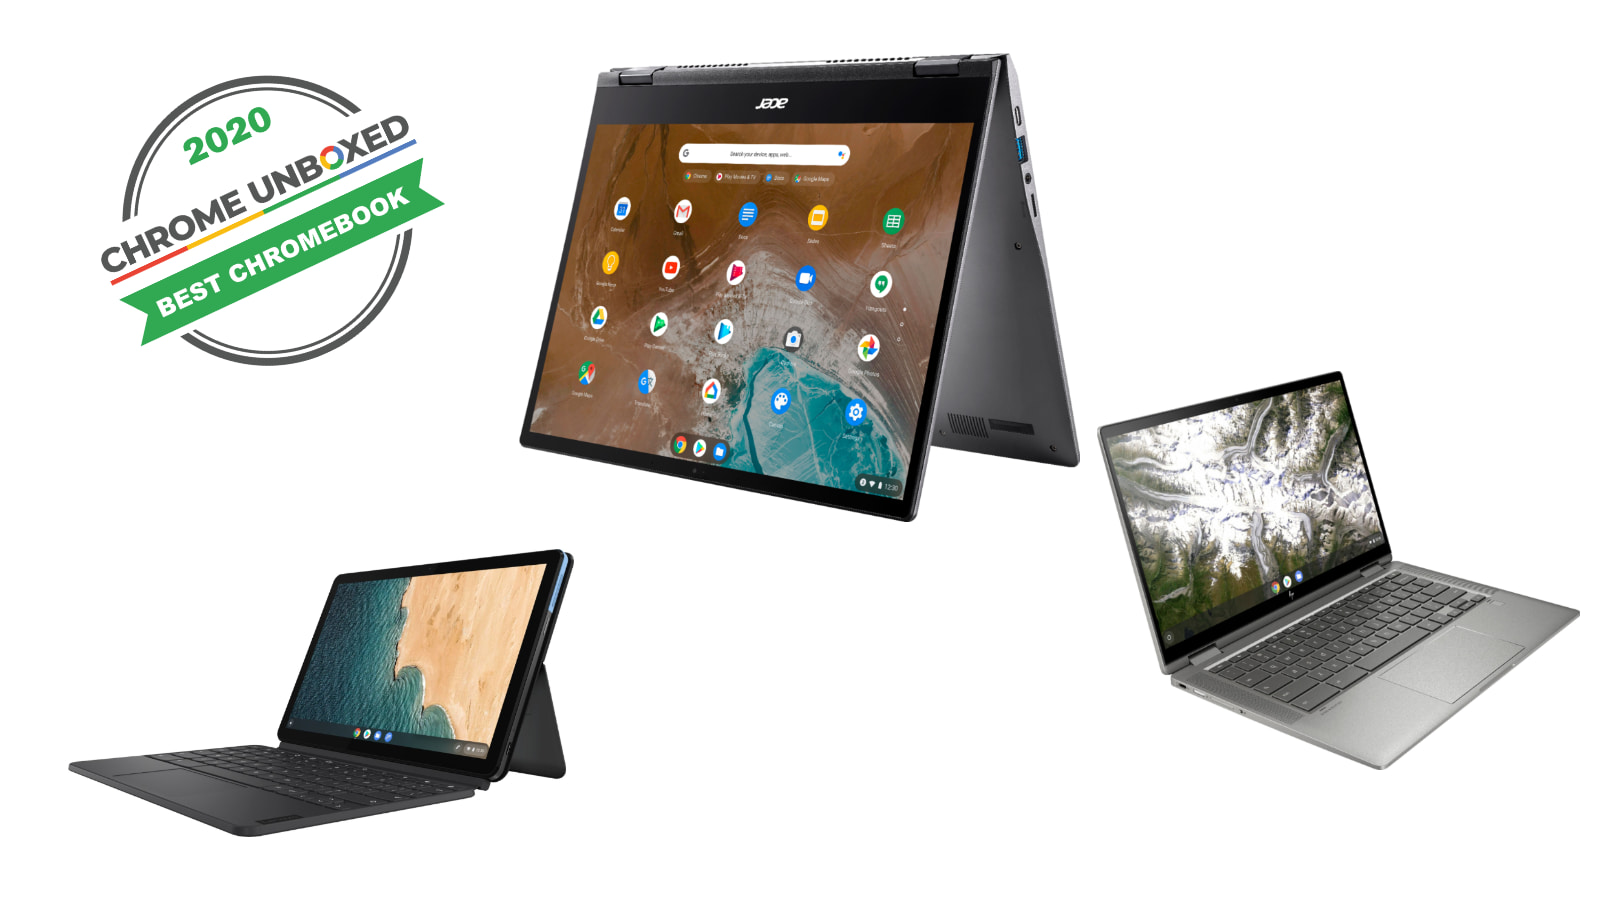 3 great Chromebook deals to kick off the New Year